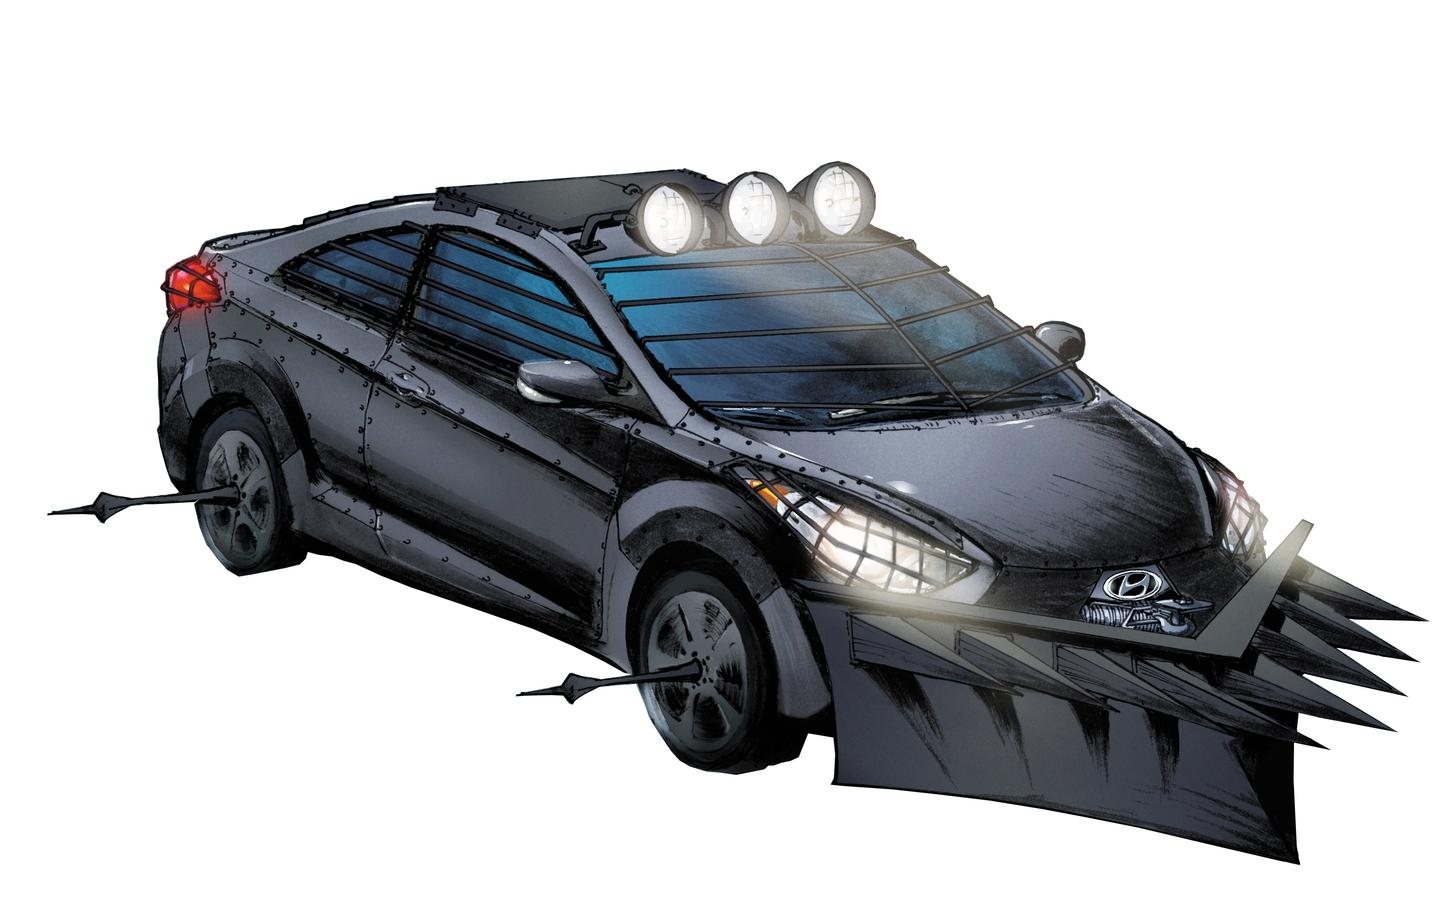 Survive the apocalypse with Hyundai